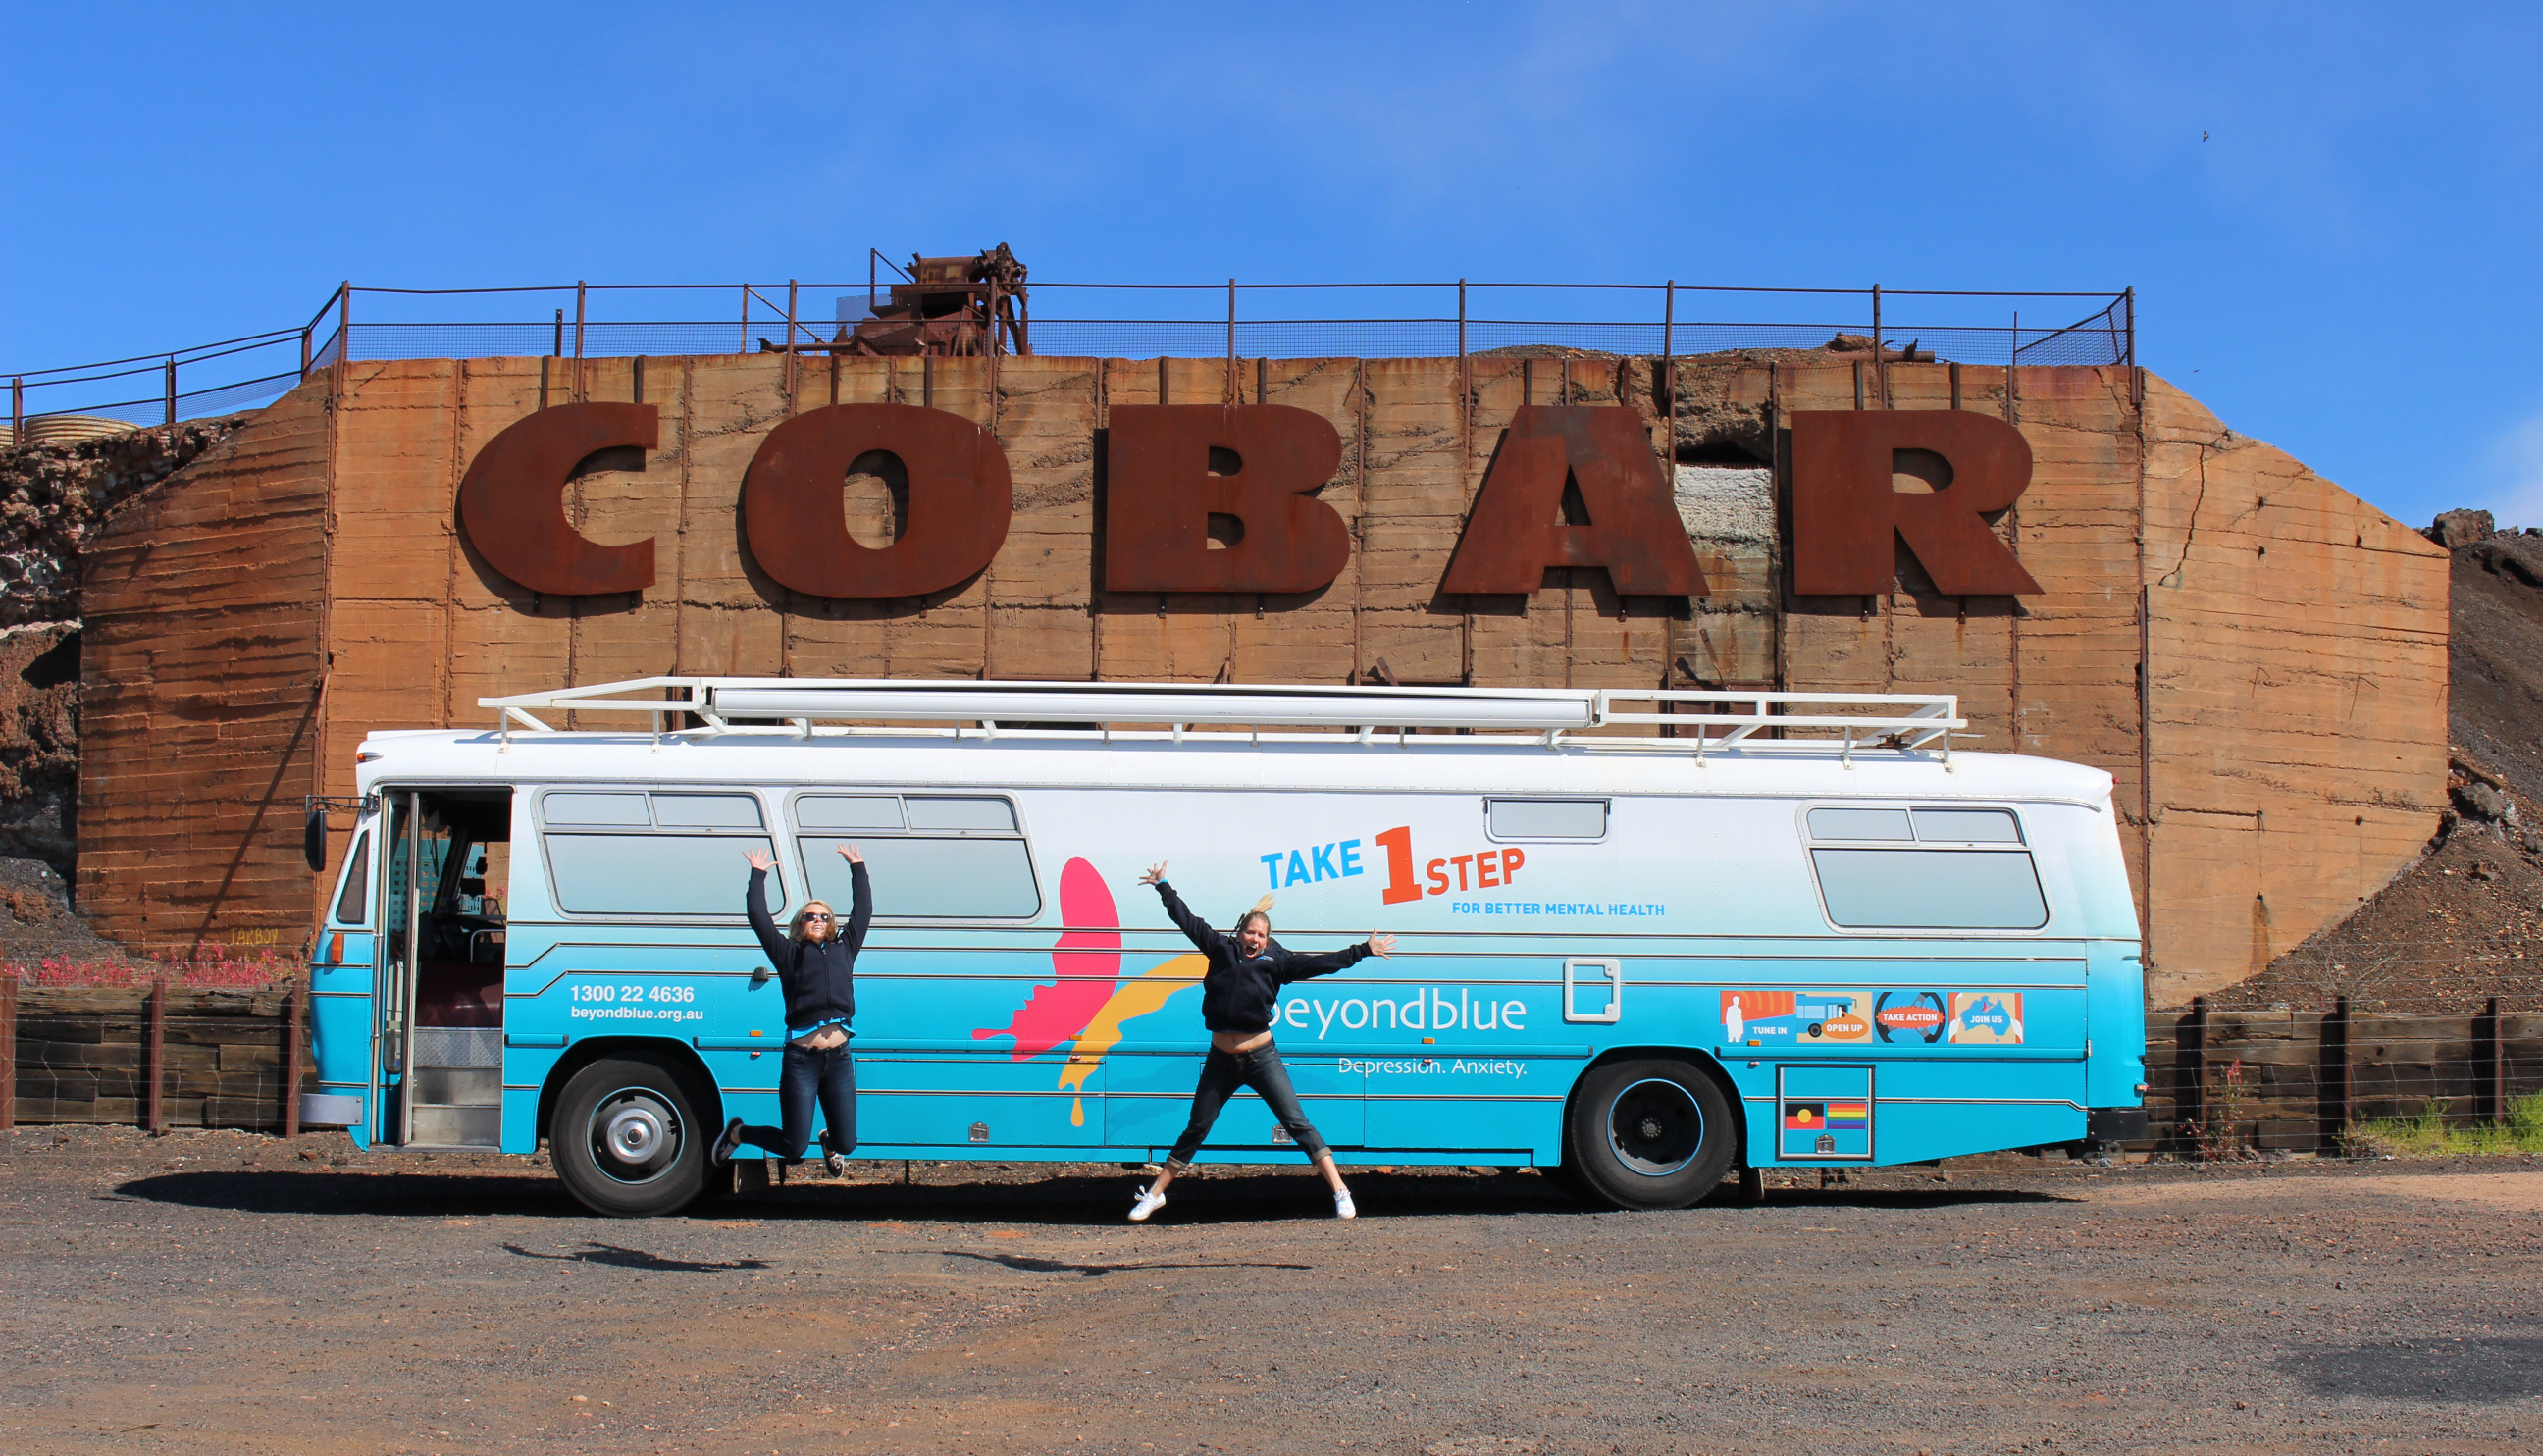 Excited to arrive in Cobar.